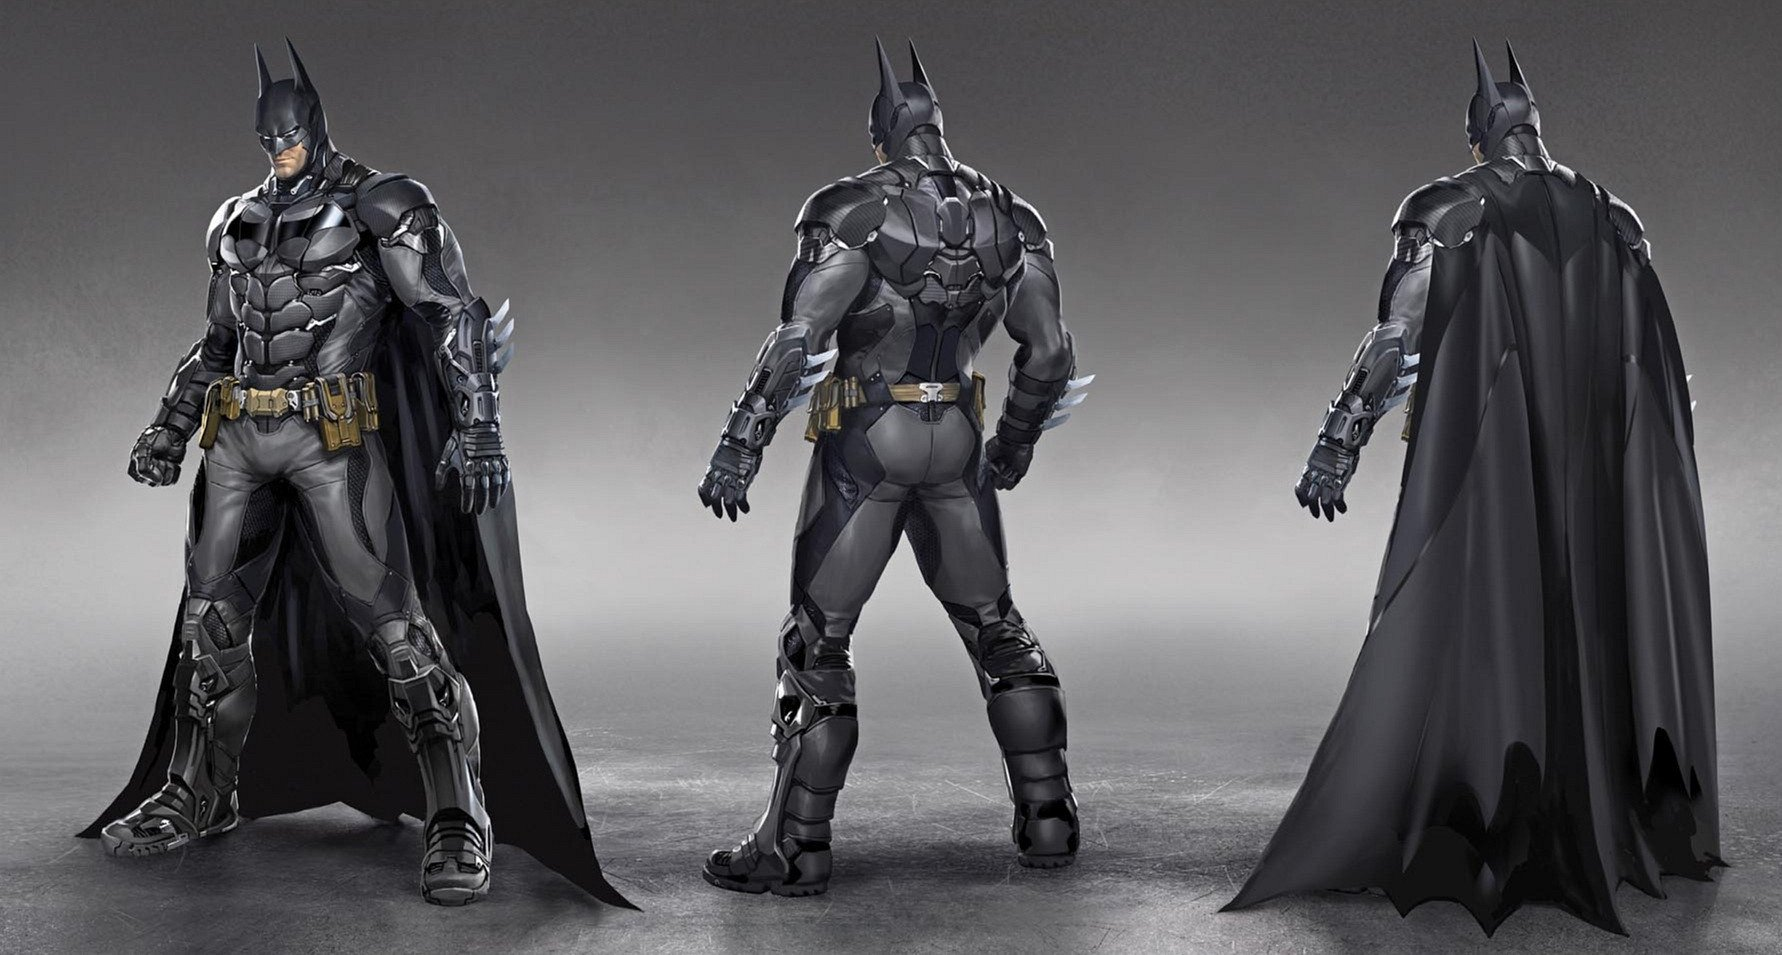 http://i11d.3djuegos.com/juegos/10762/batman_arkham_knight/fotos/set/batman_arkham_knight-2511676.jpg